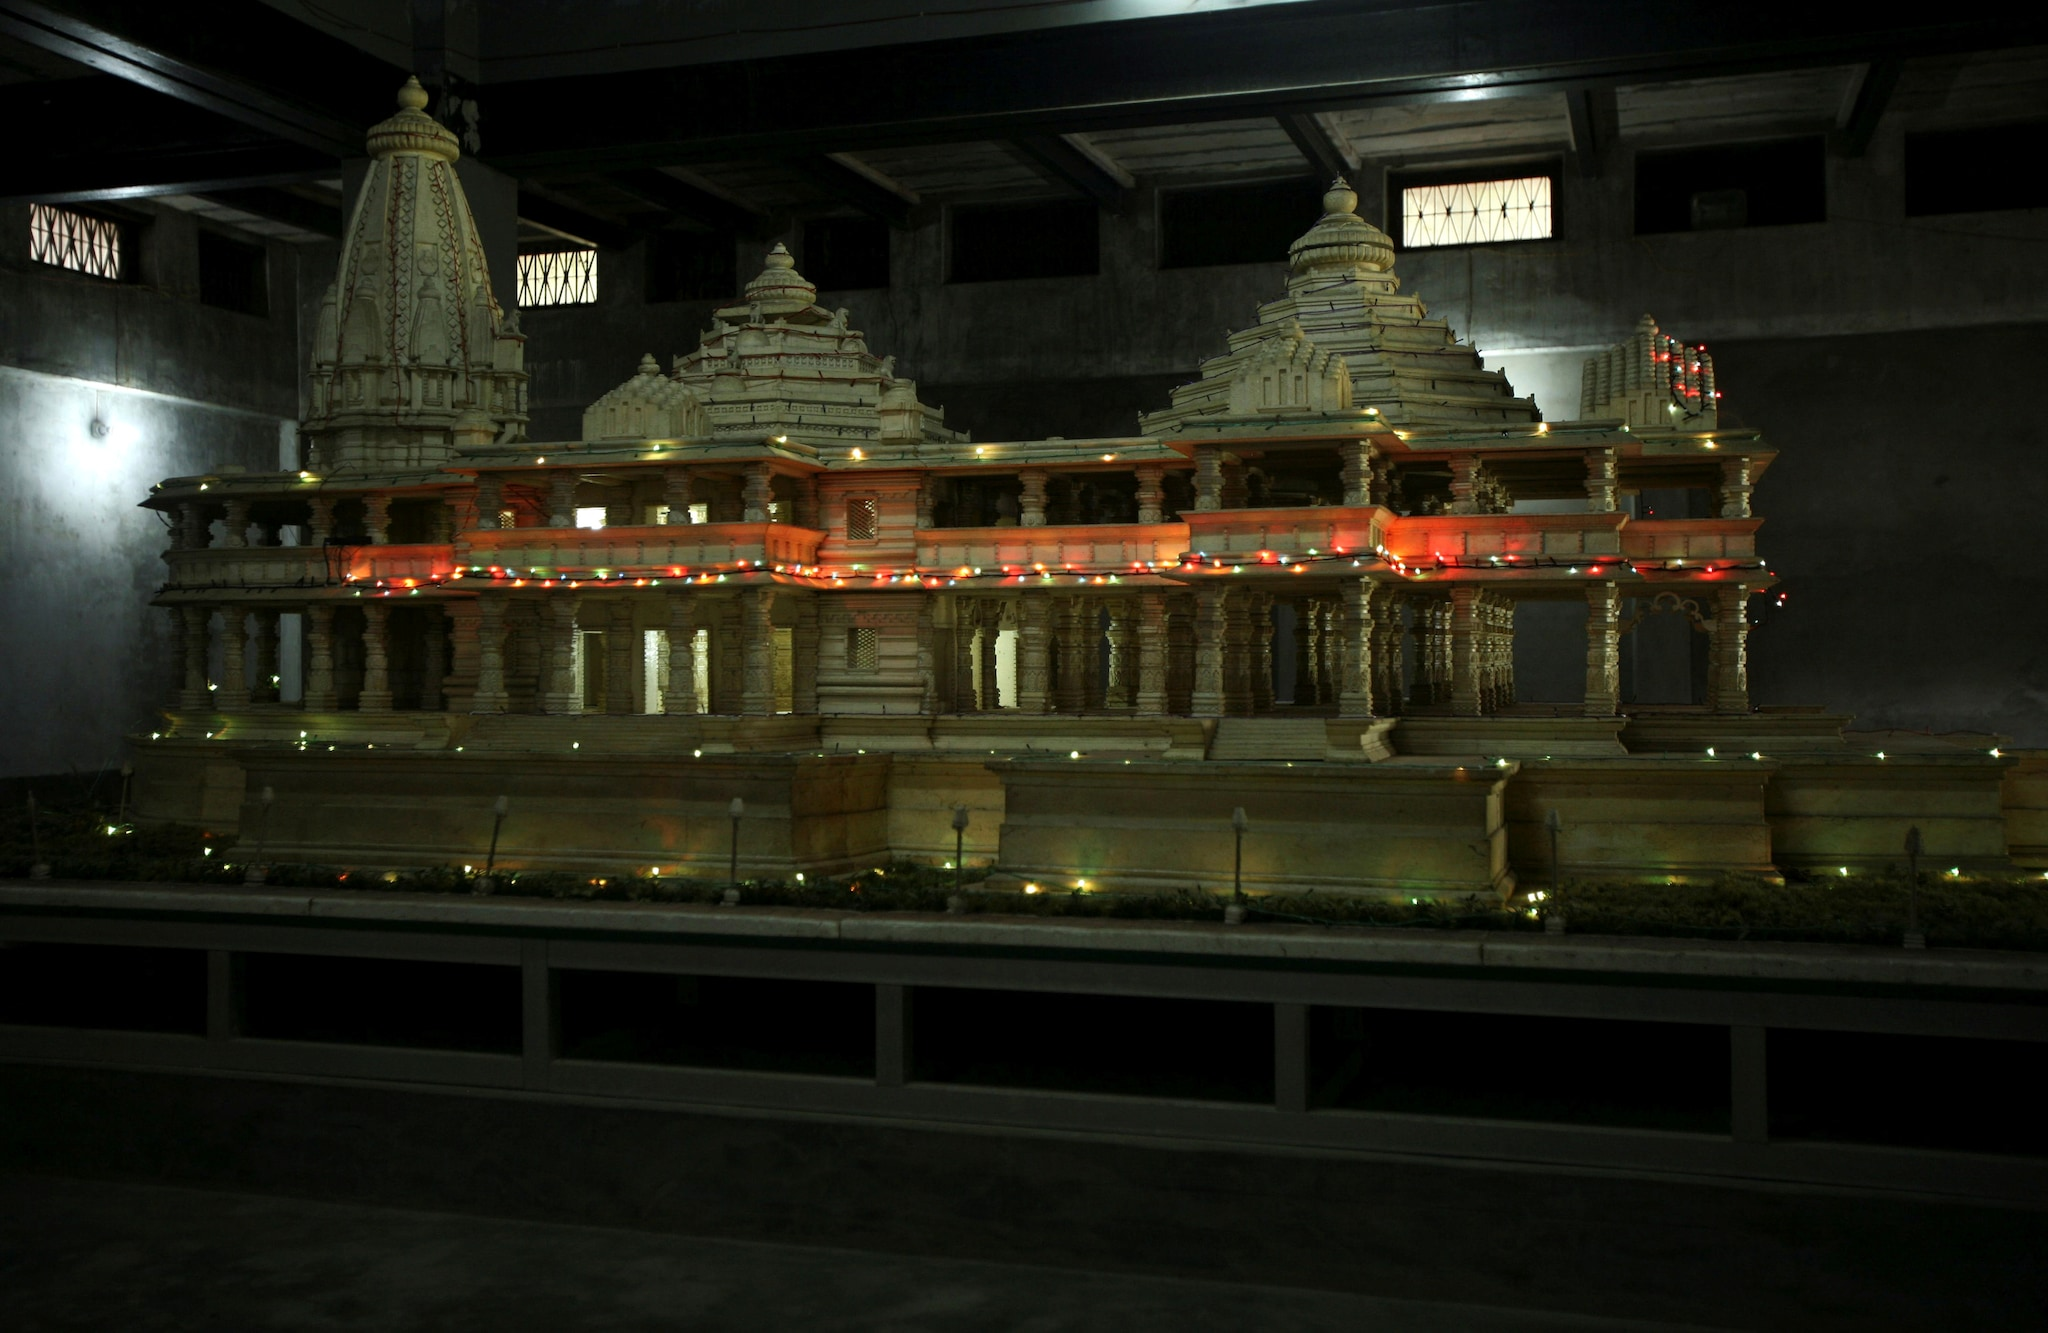 A model of a proposed Ram temple, which Hindus want to build on the site of the demolished Babri Mosque, is pictured in Ayodhya September 30, 2010. REUTERS/Mukesh Gupta/File photo